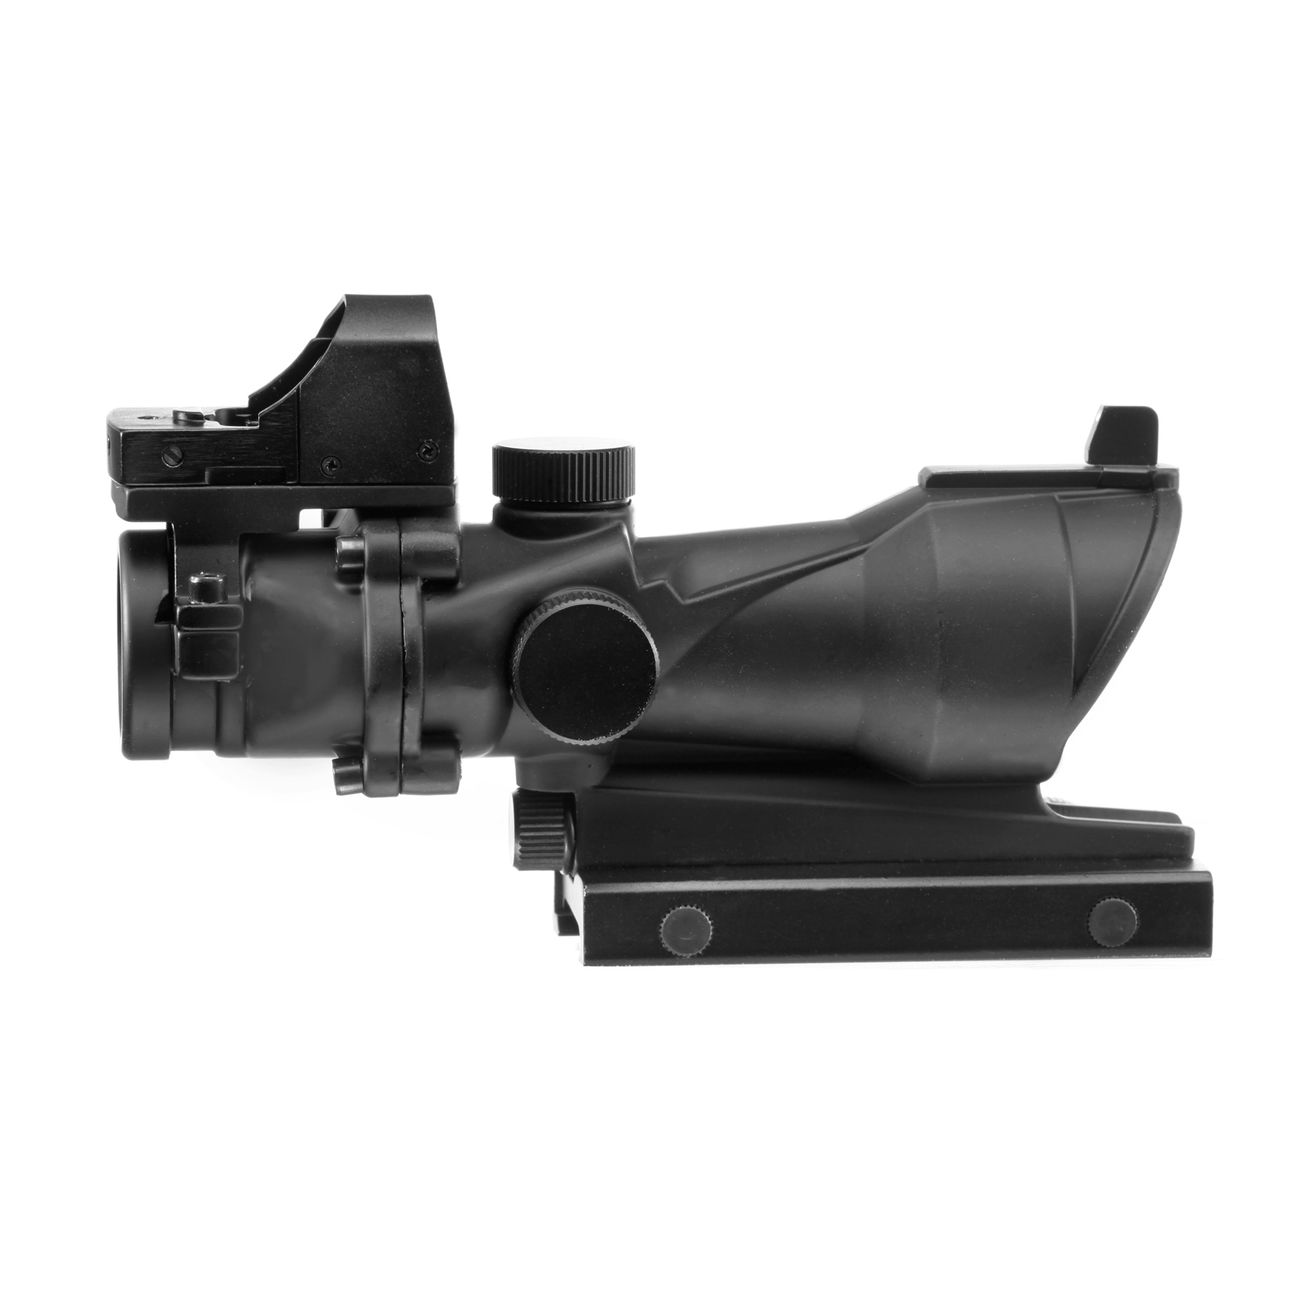 Aim-O TA01 Style Scope 4x32 beleuchtet mit Mini Red Dot schwarz AO 5320-BK 4